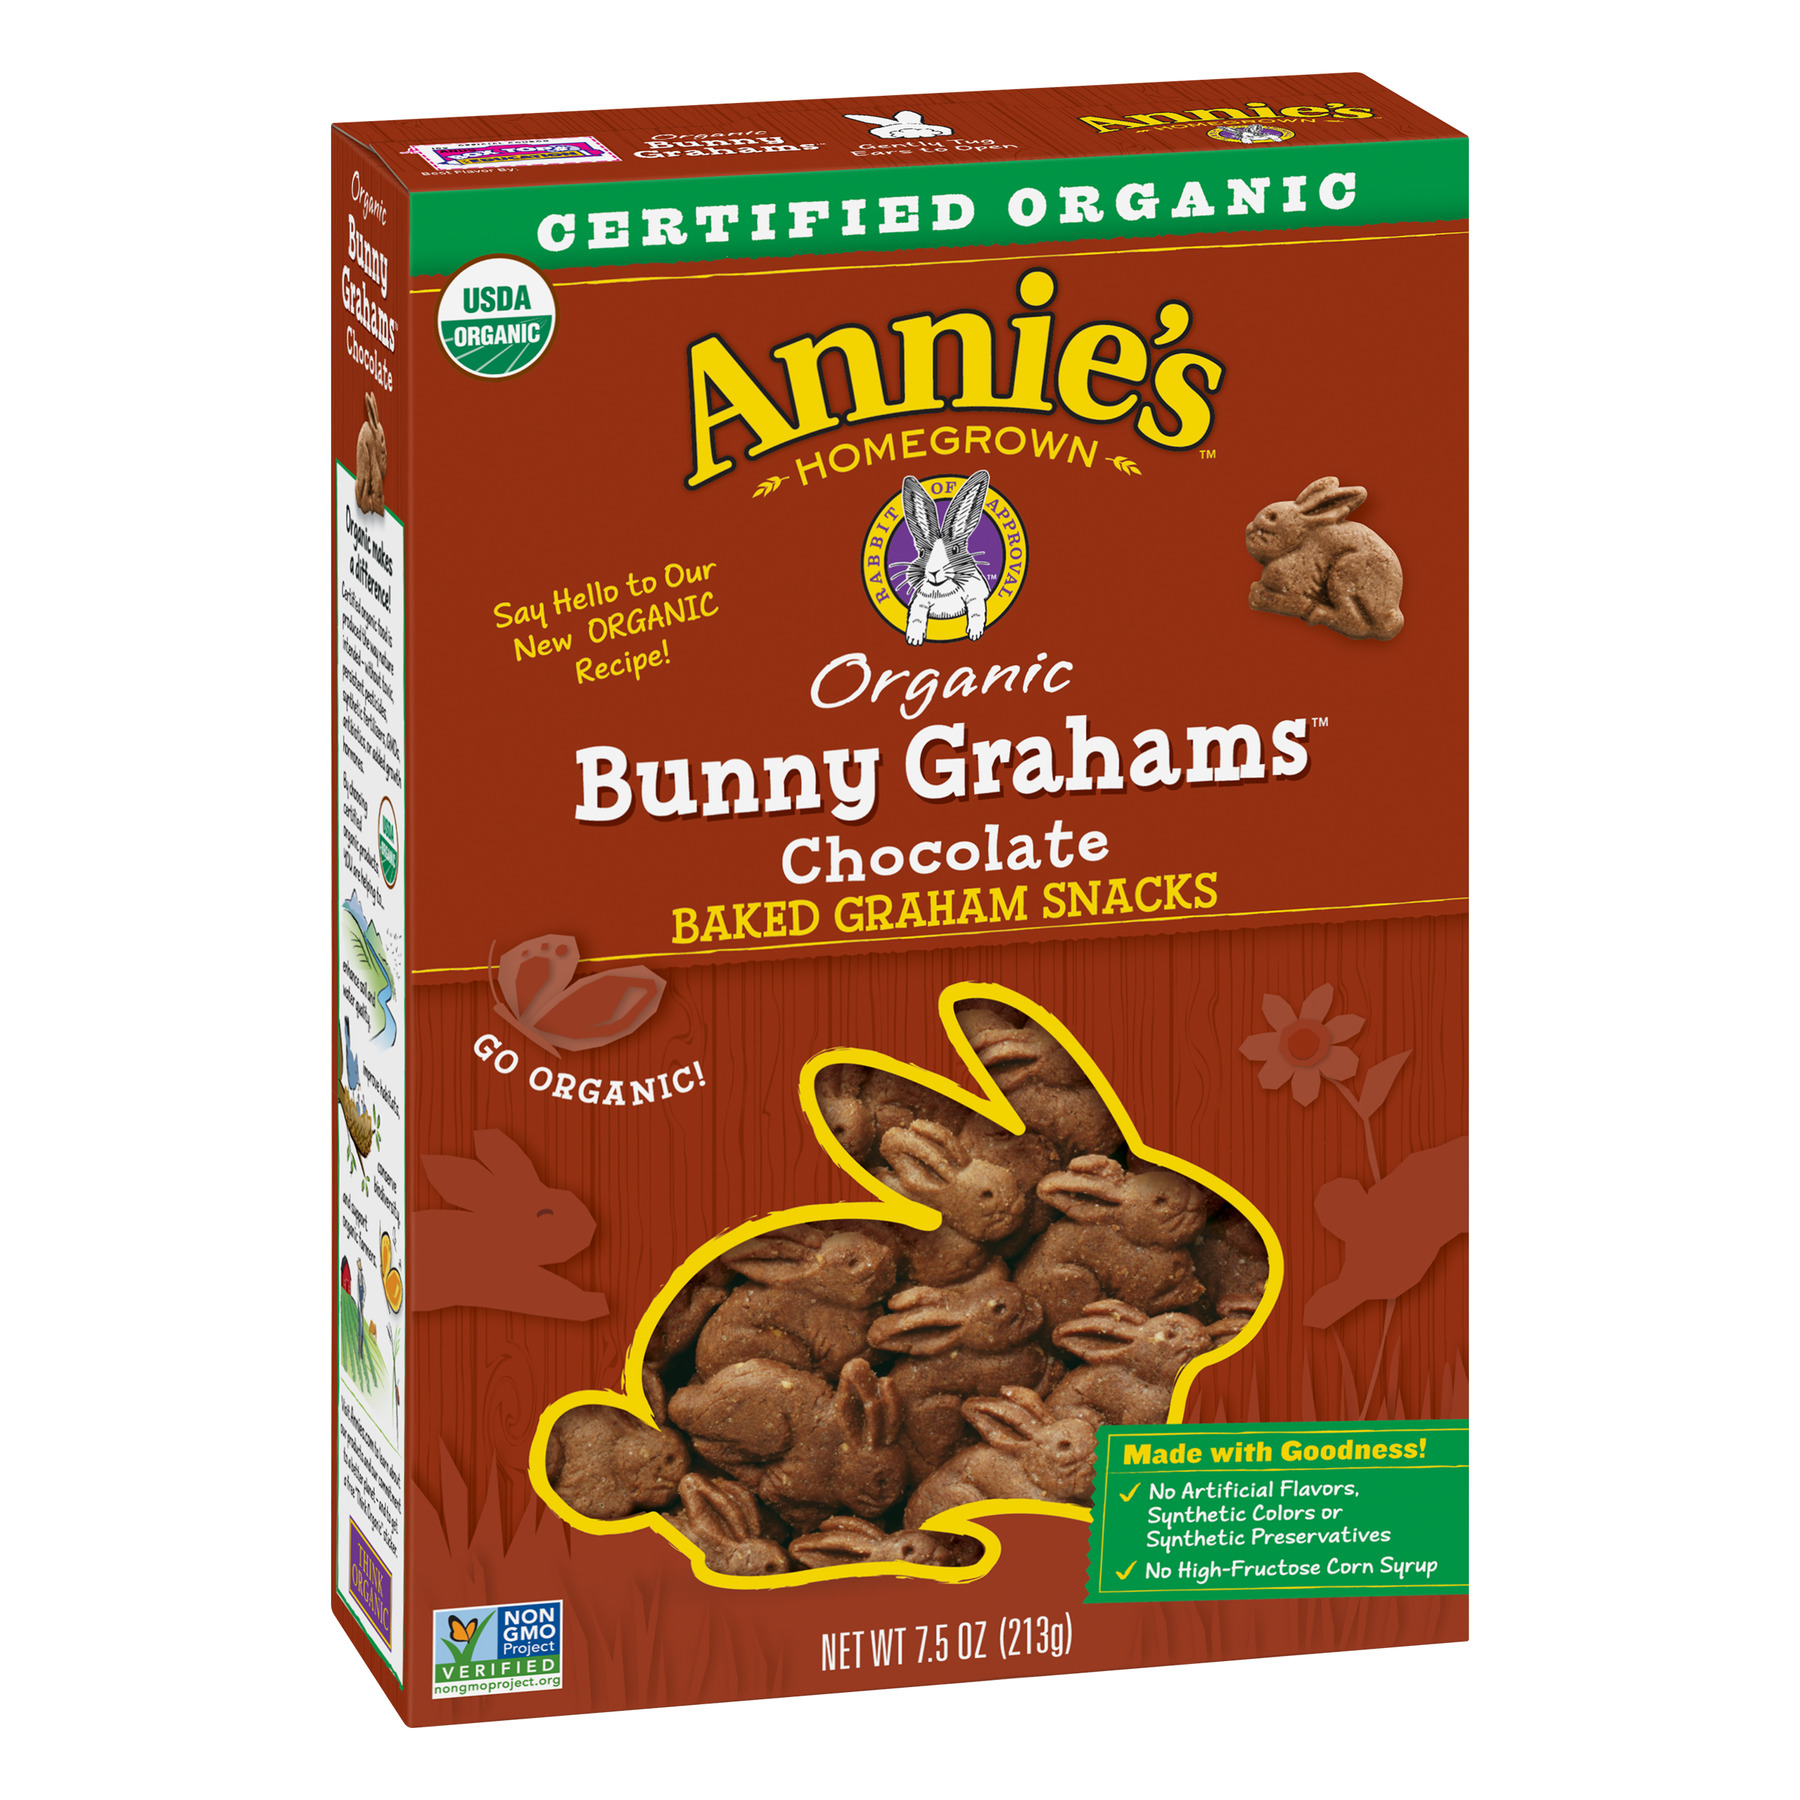 Annie's Bunny Grahams, Chocolate, Graham Snacks, 7.5 oz Box